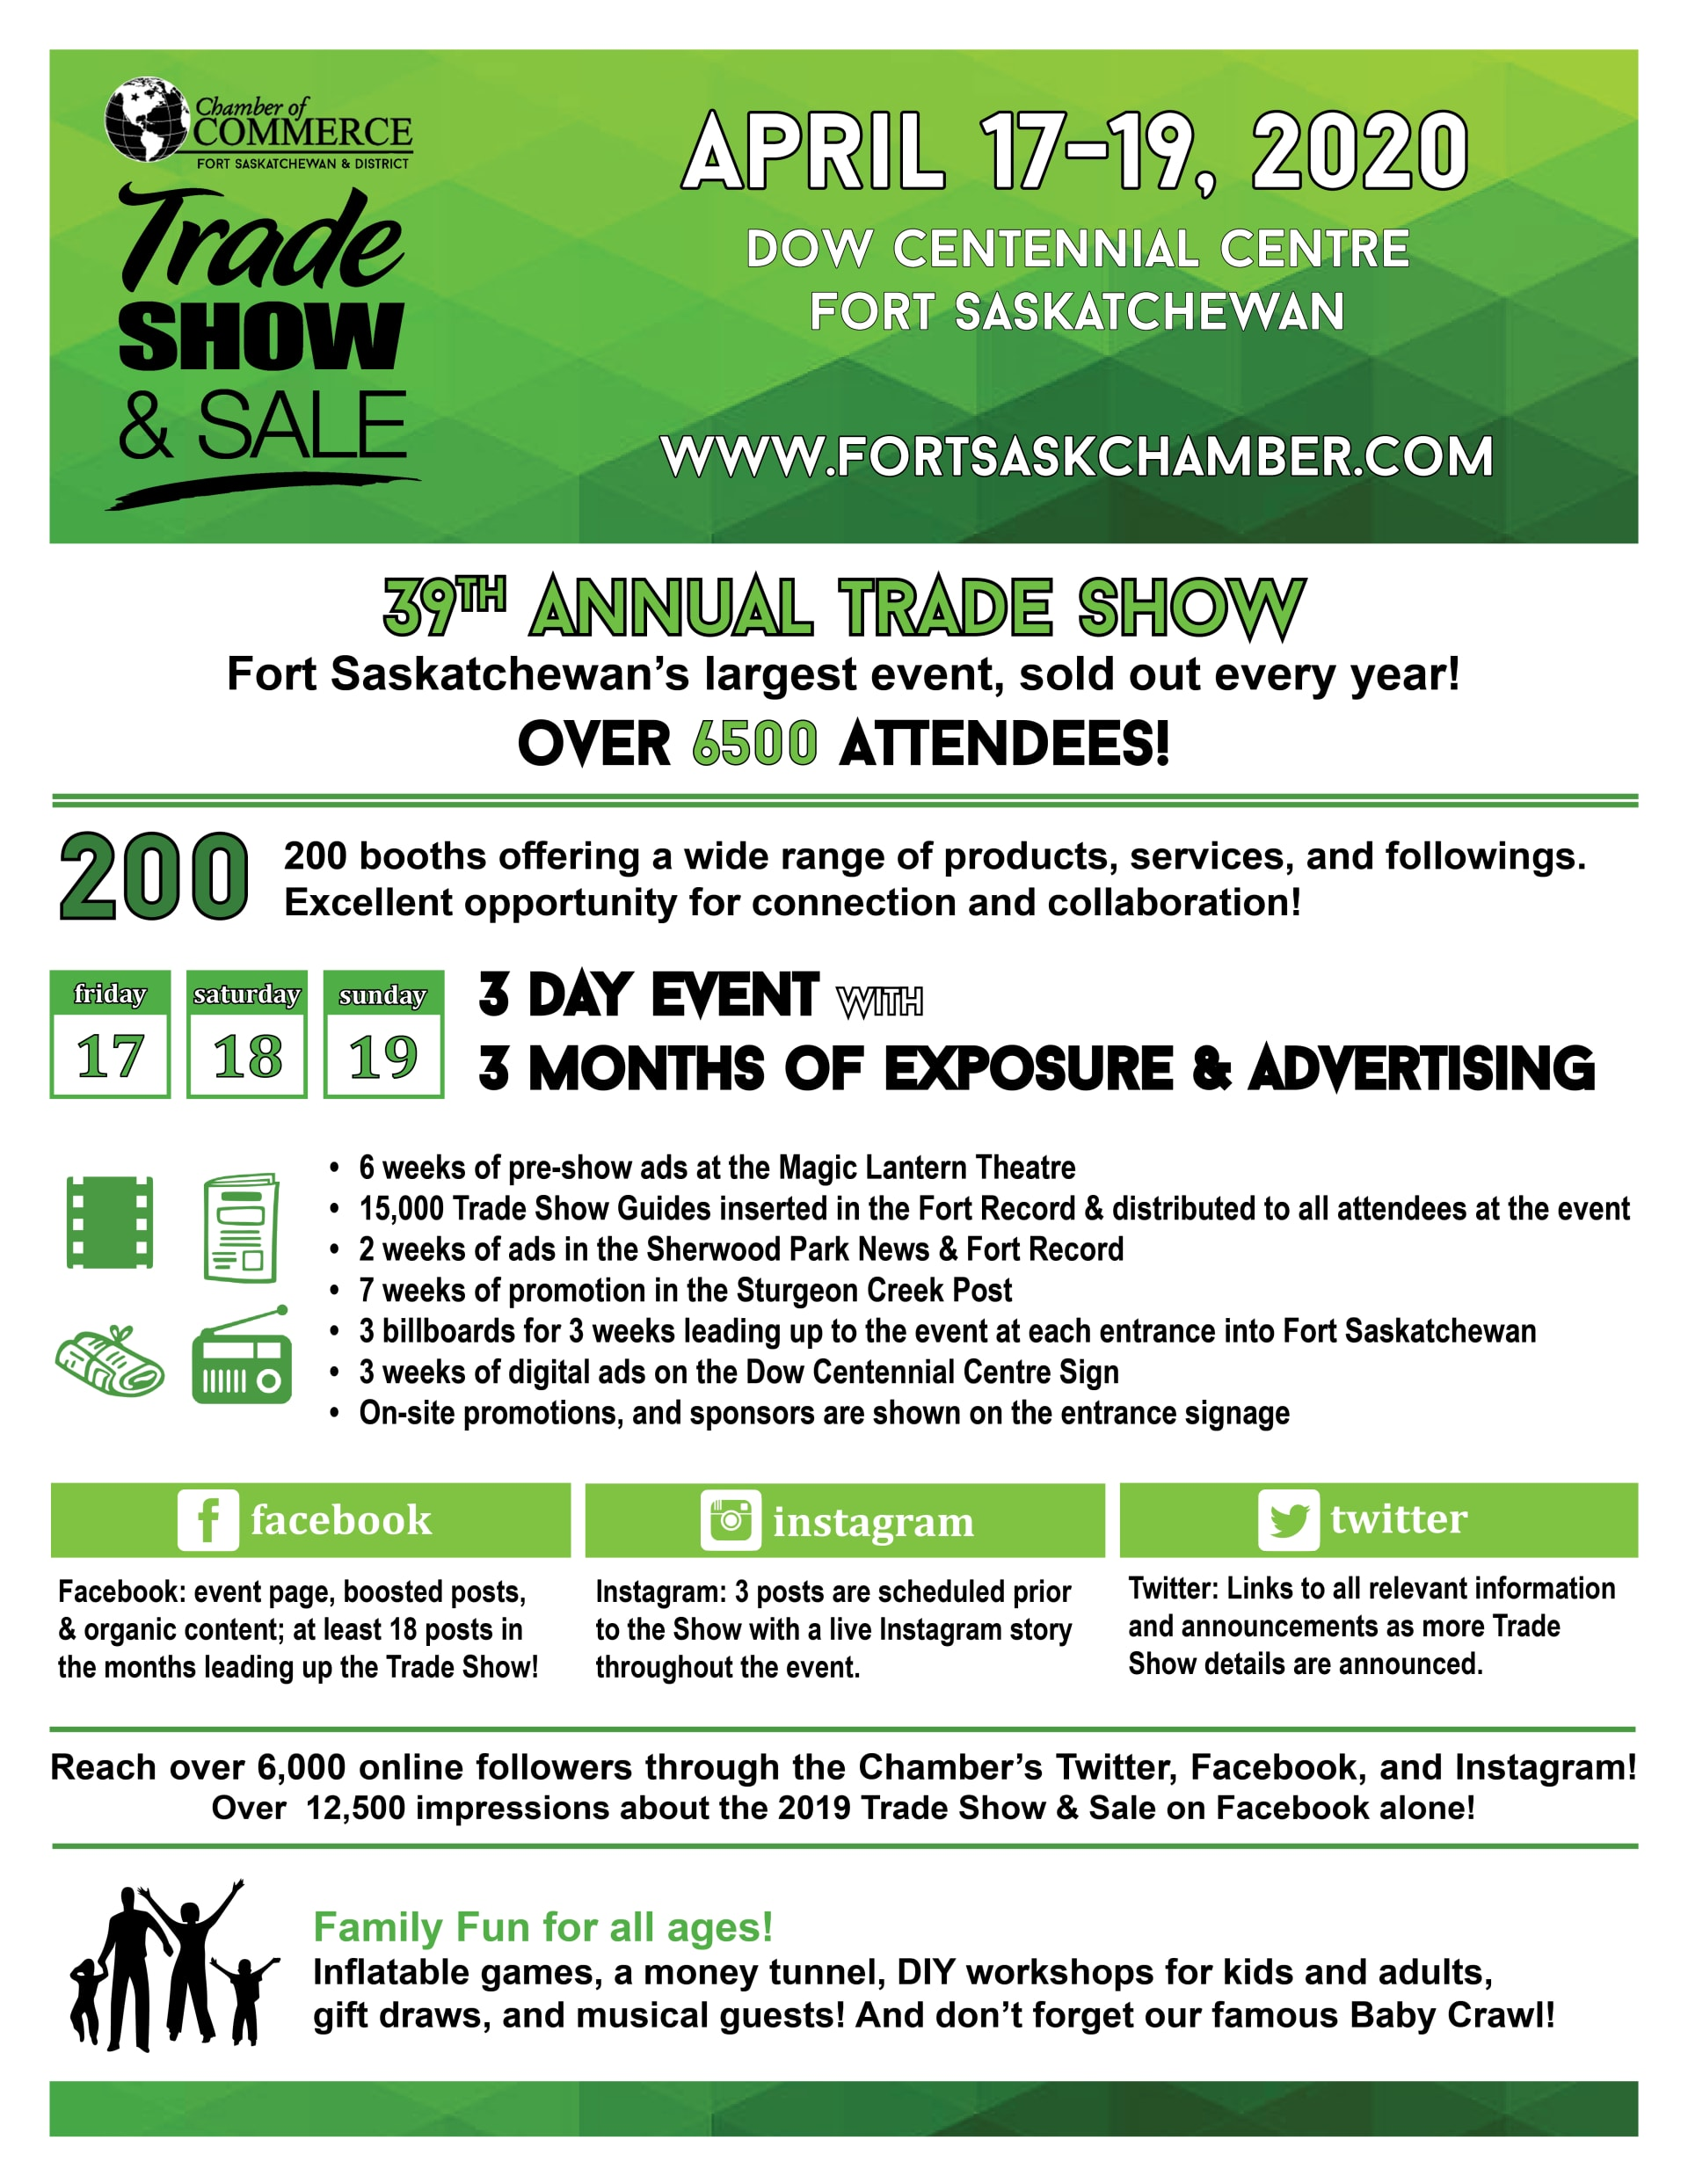 Trade Show InfoGraphic